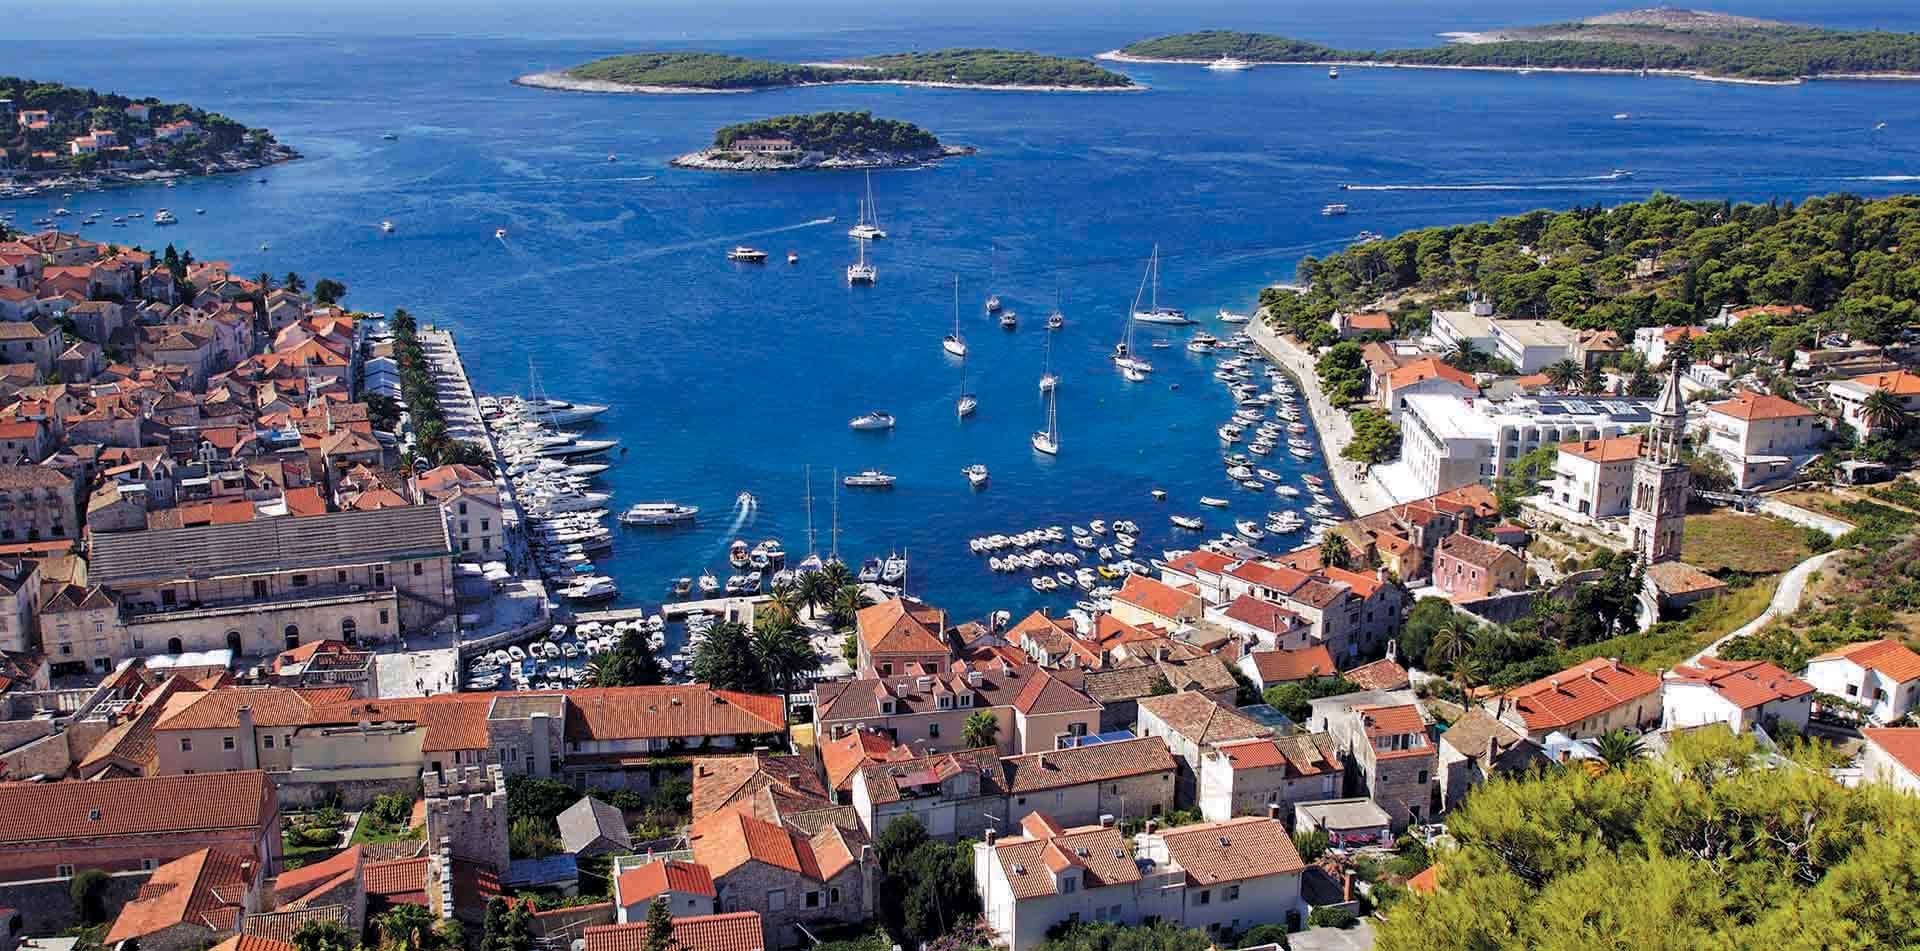 Europe Croatia Hvar blue Dalmatian Coast beautiful view red tile roofs boats port - luxury vacation destinations